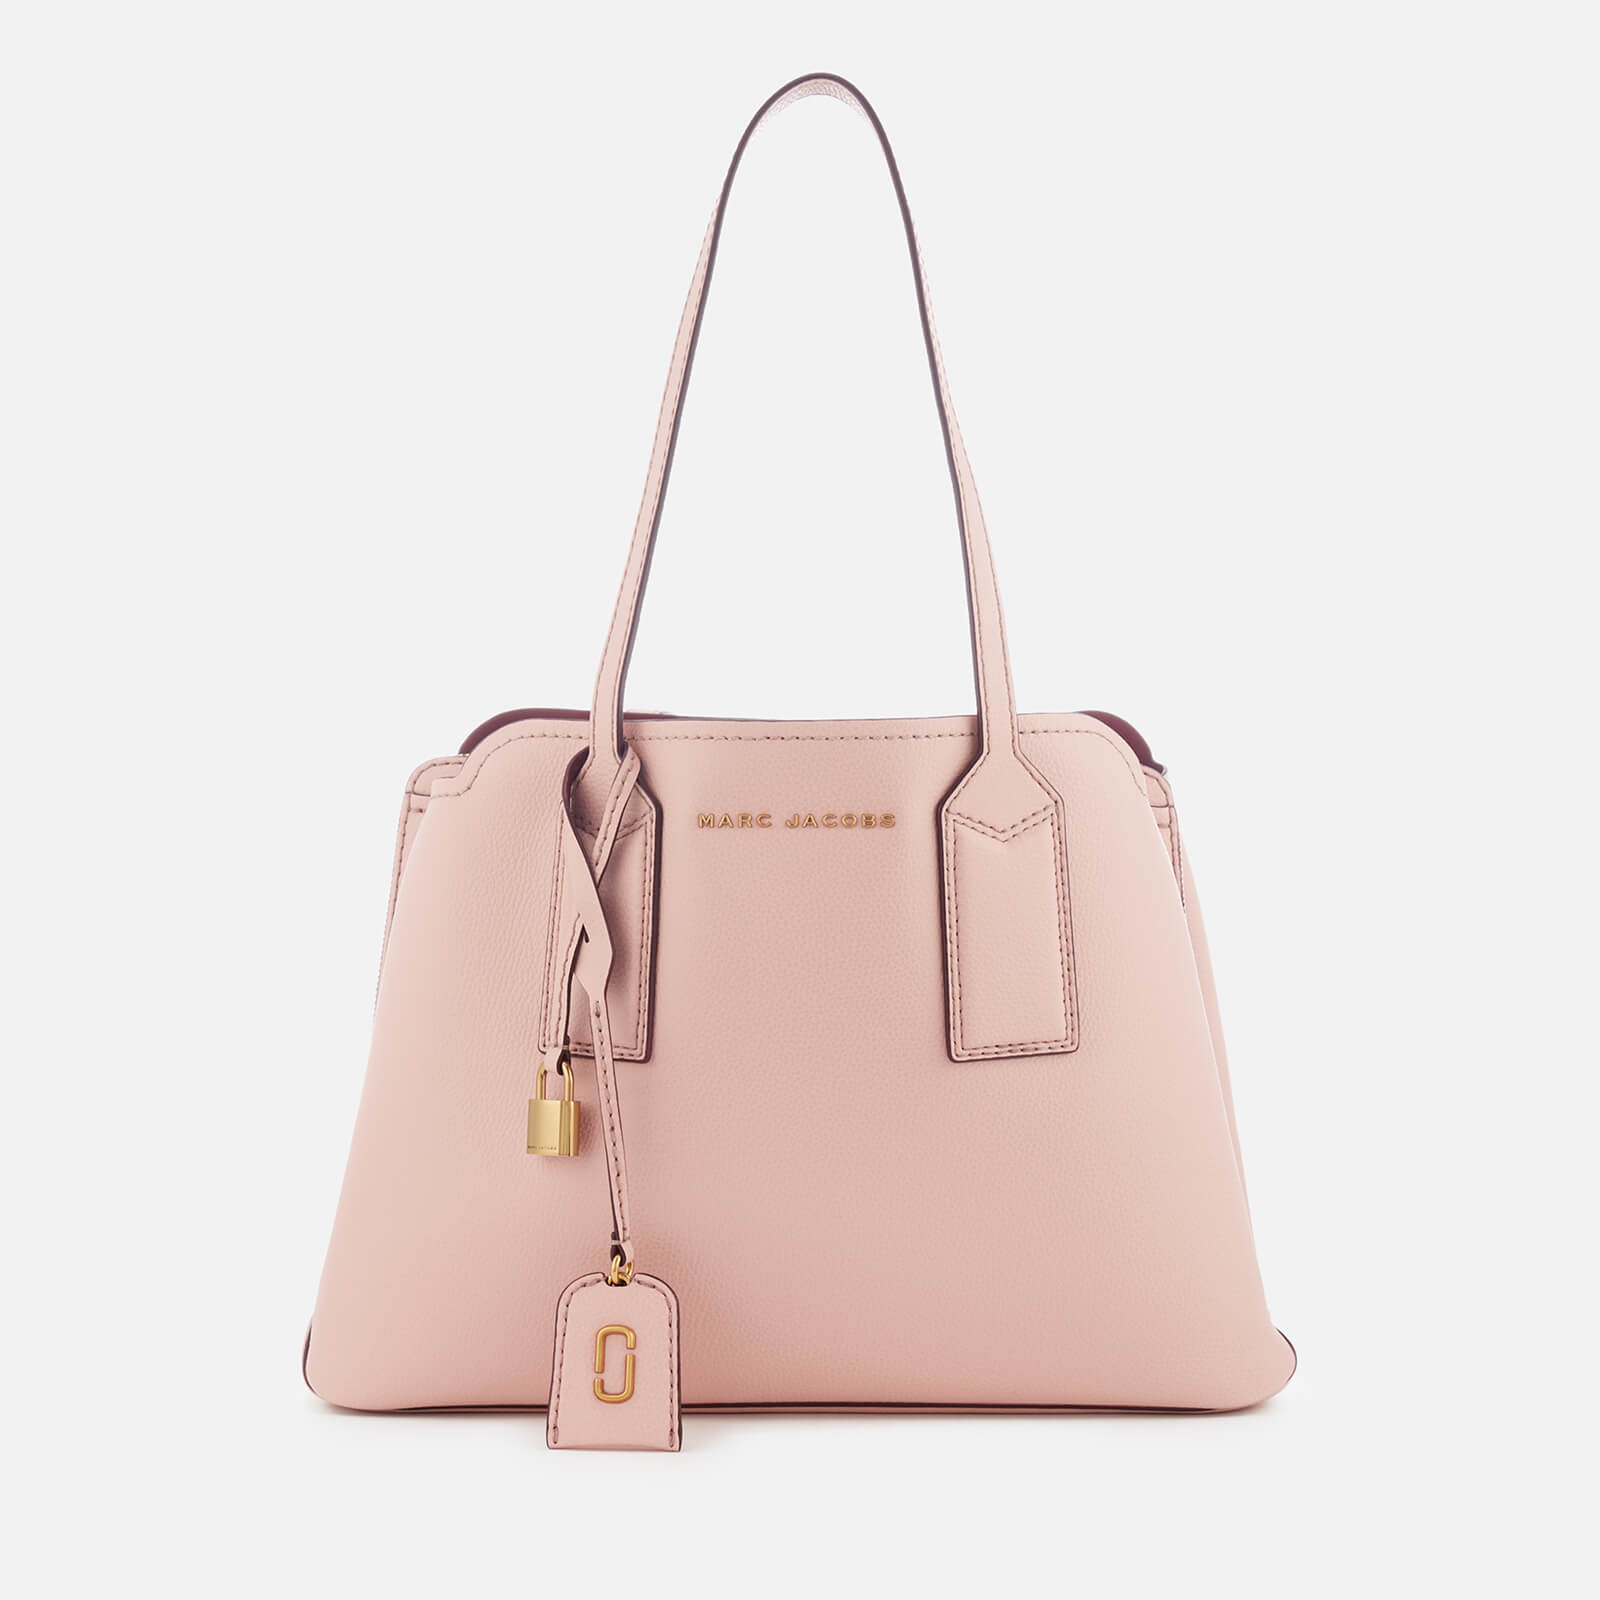 16bc4a269993 Marc Jacobs Women s The Editor Tote Bag - Rose - Free UK Delivery over £50